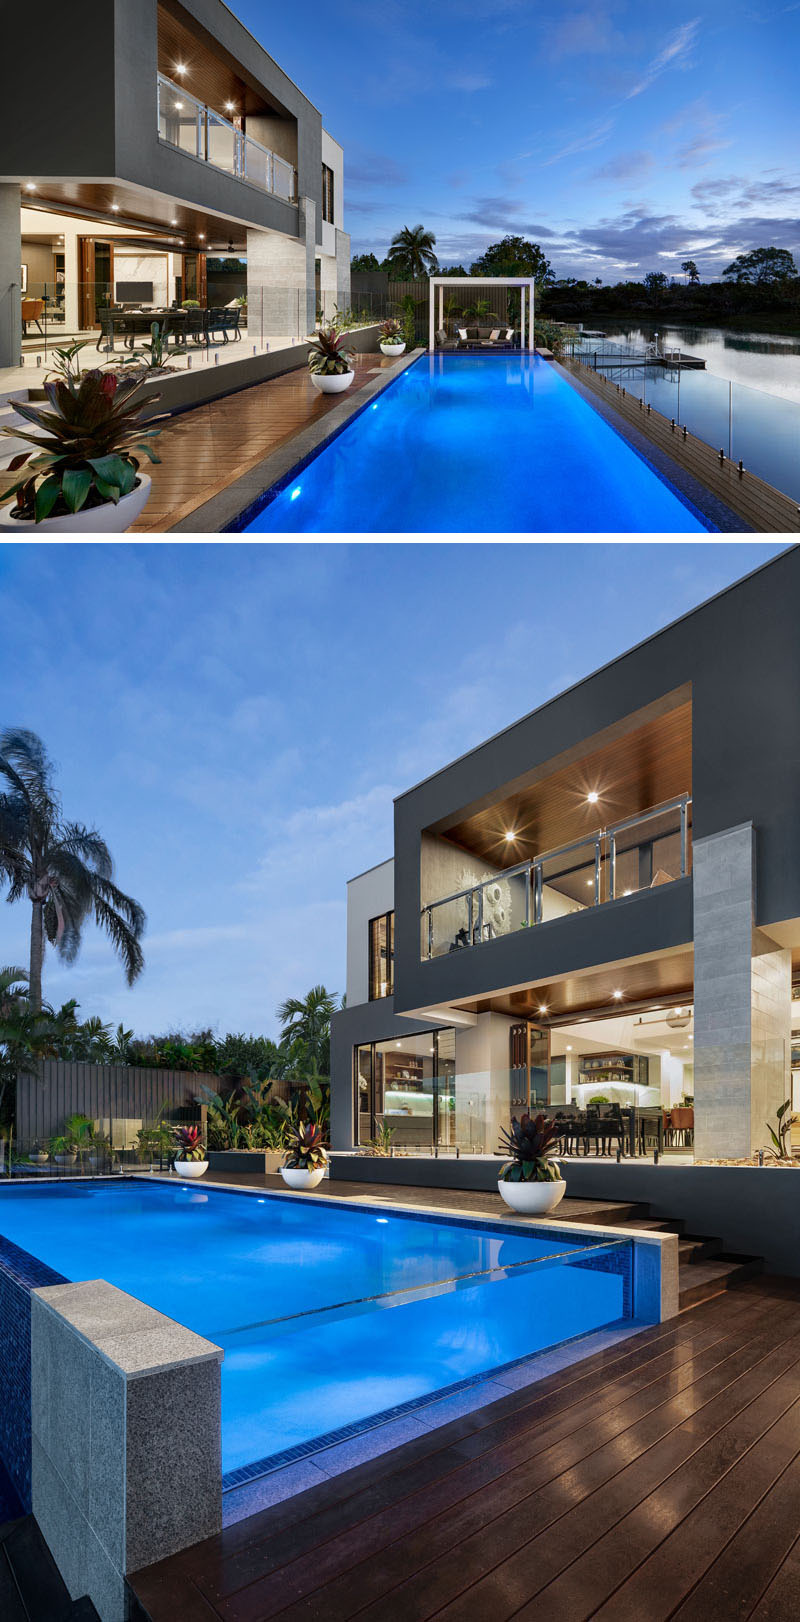 modern house design architecture swimming pool 1253 05